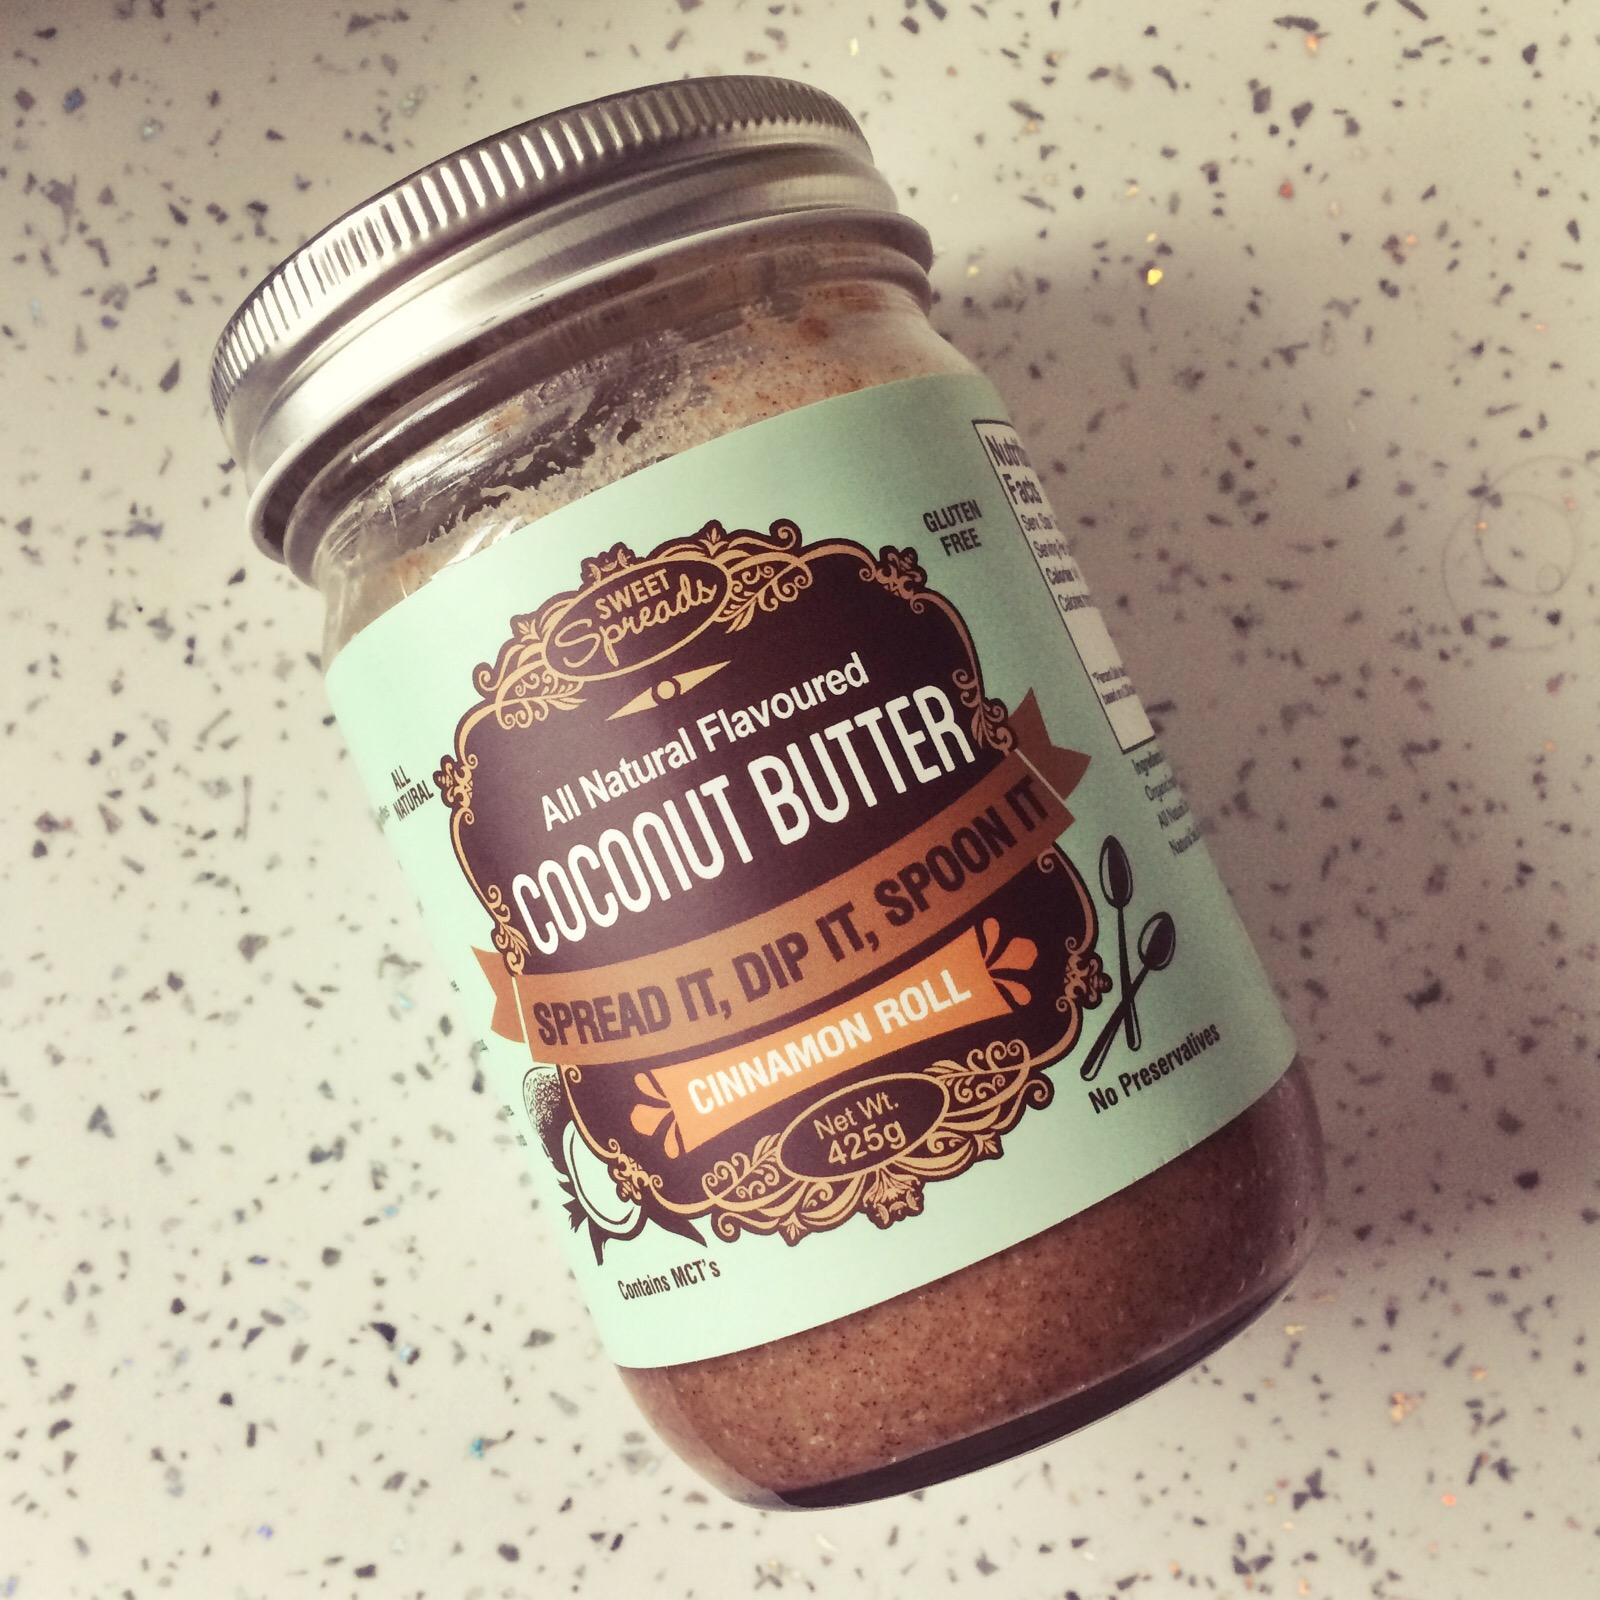 Head to Tone Blog: Jar of Sweet Spreads Cinnamon Roll Flavoured Coconut Butter Reviewed by Nom. Image Copyright Naomi Bullivant for Head to Tone Blog